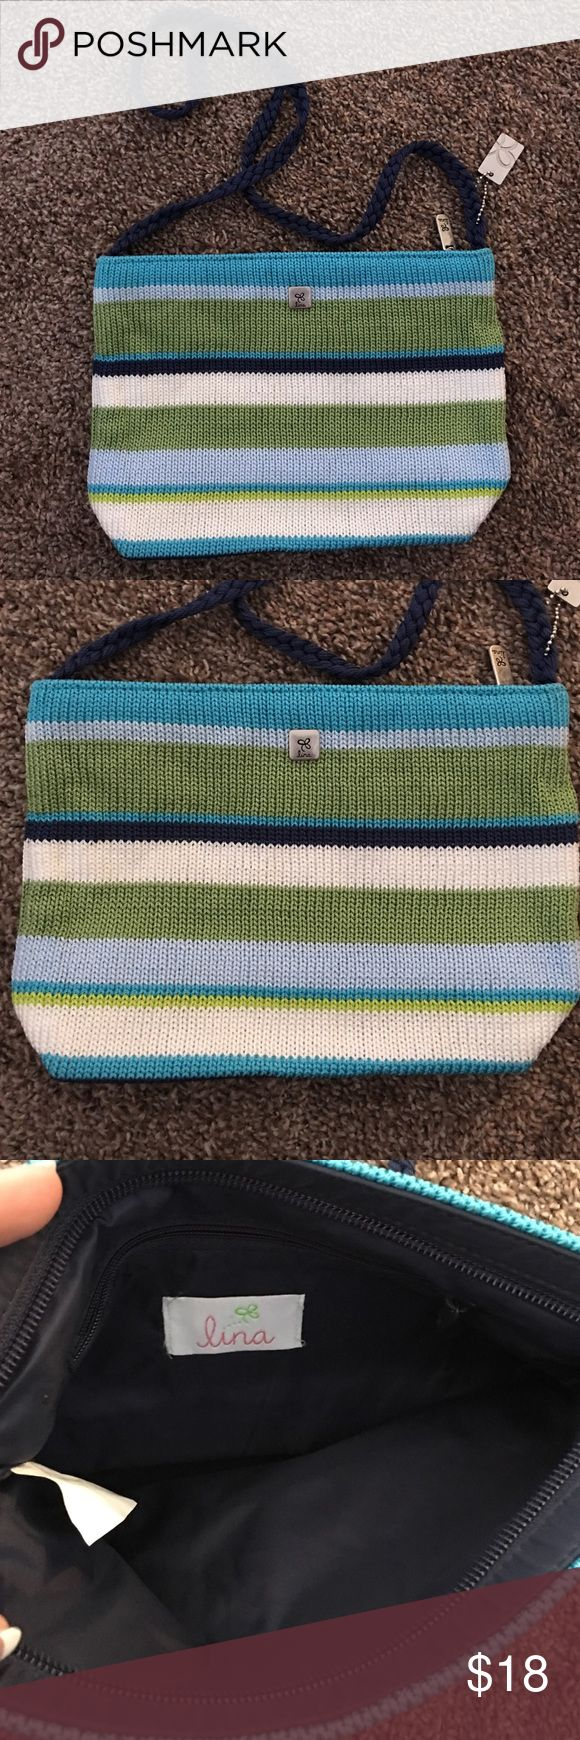 LINA SHOULDER BAG Never used, in mint condition. 100% polypropylene. Can be used as cross body 10 inches across 7 inches top to bottom. lina Bags Shoulder Bags